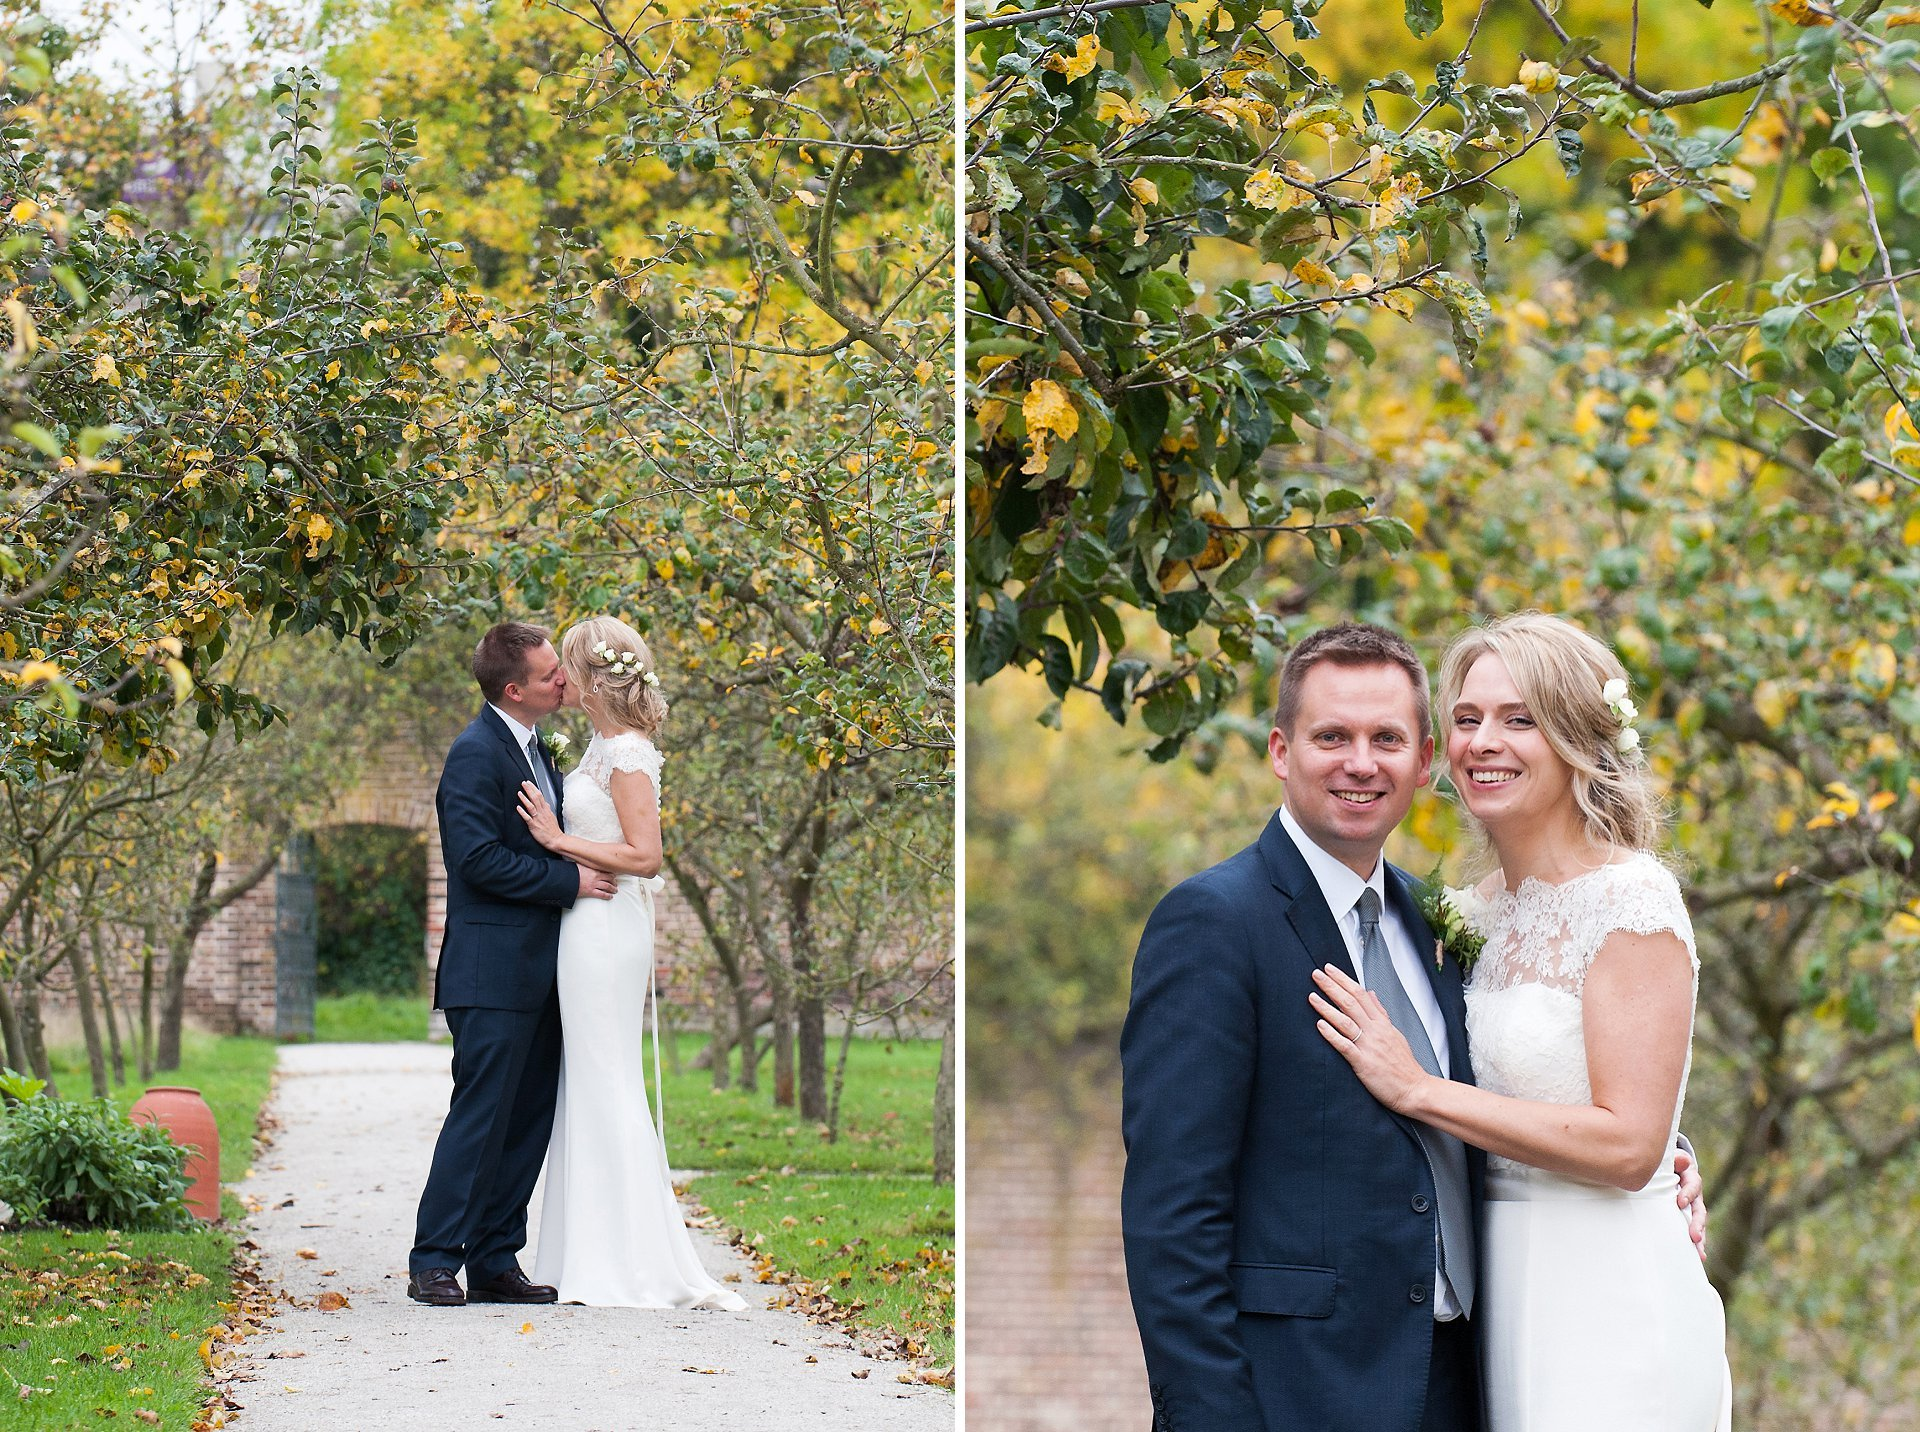 The orchard in Autumn at Fulham Palace is a great backdrop for wedding photography